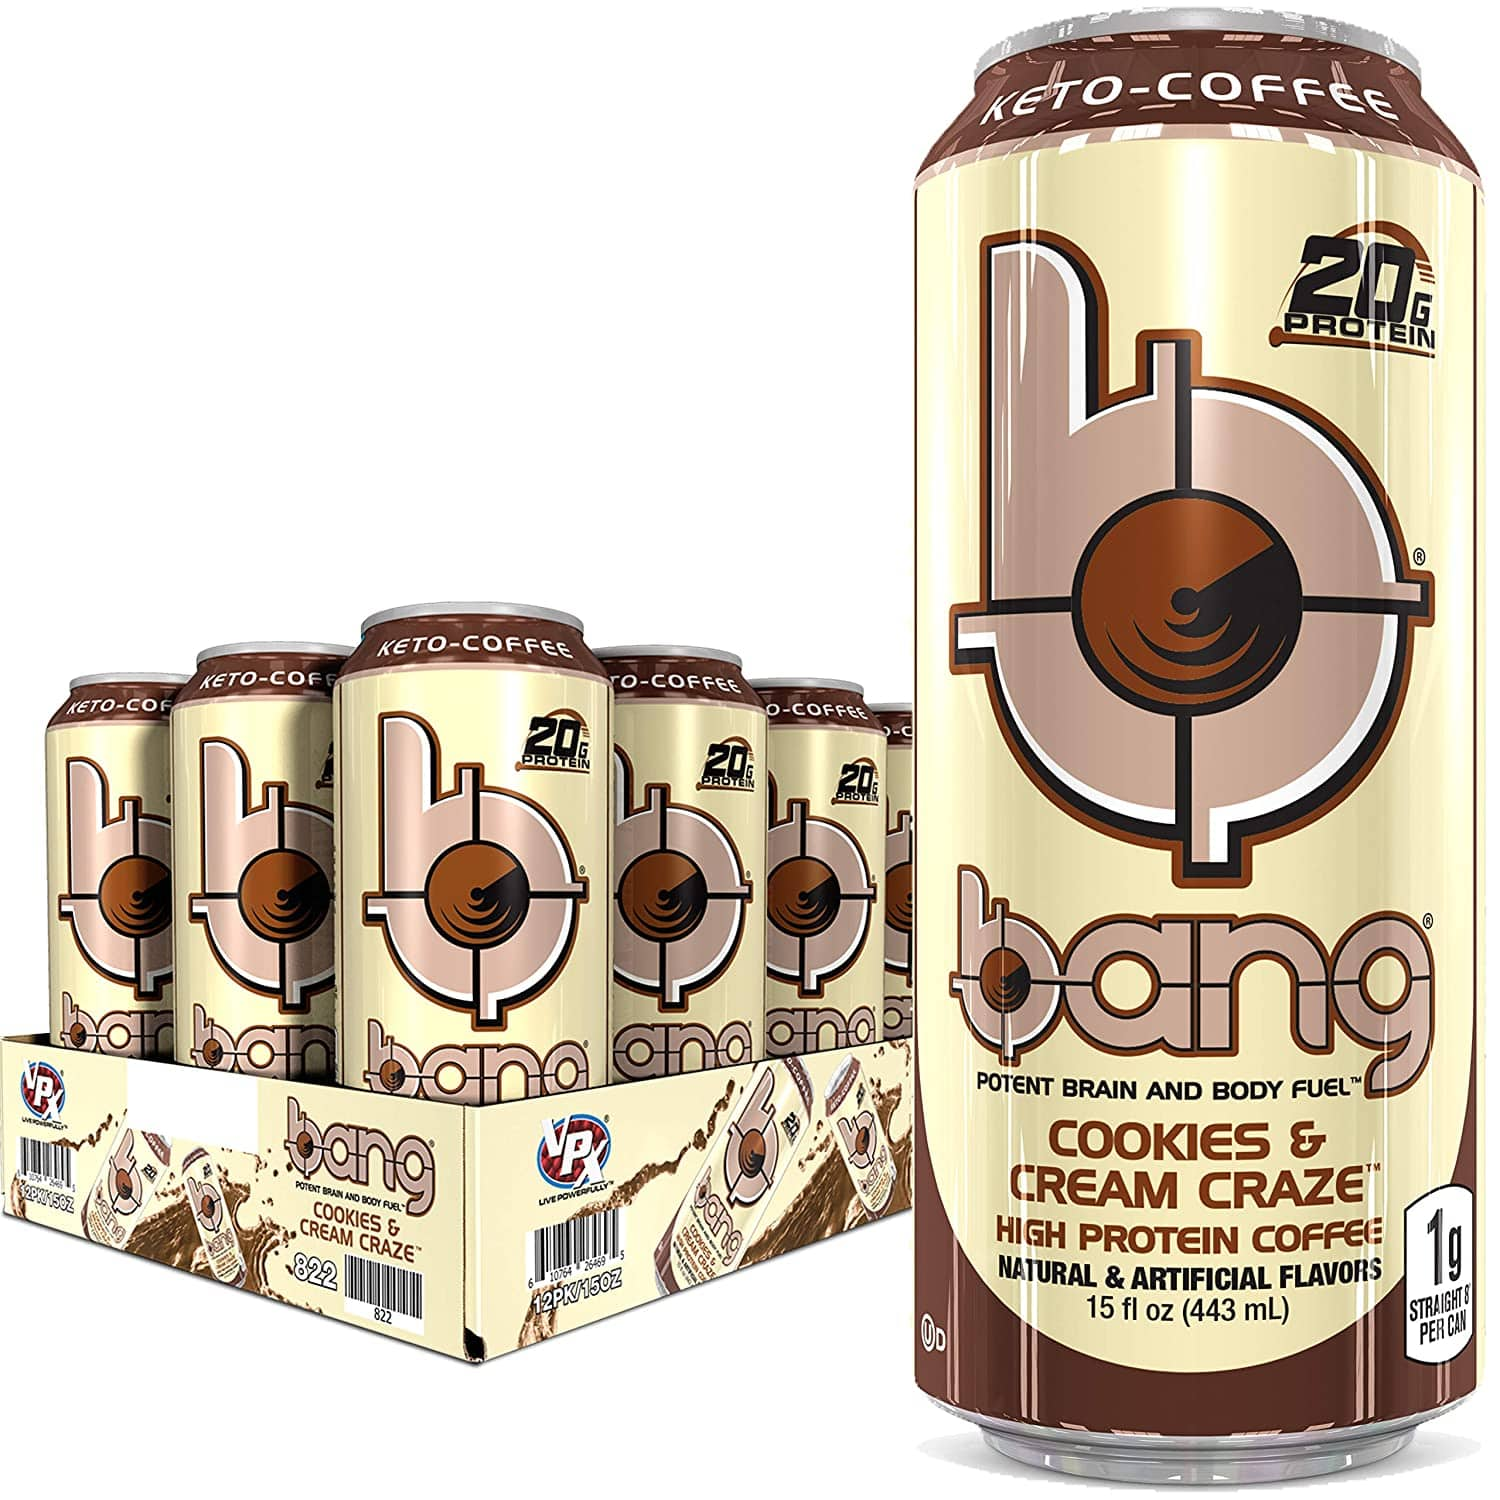 BANG Cookies and Cream Keto Coffee Energy Drink, 20g Protein, Coffee Cookies & Cream 15 Fl Oz (Pack of 12) on Amazon + Prime shipping $2.98 $2.98